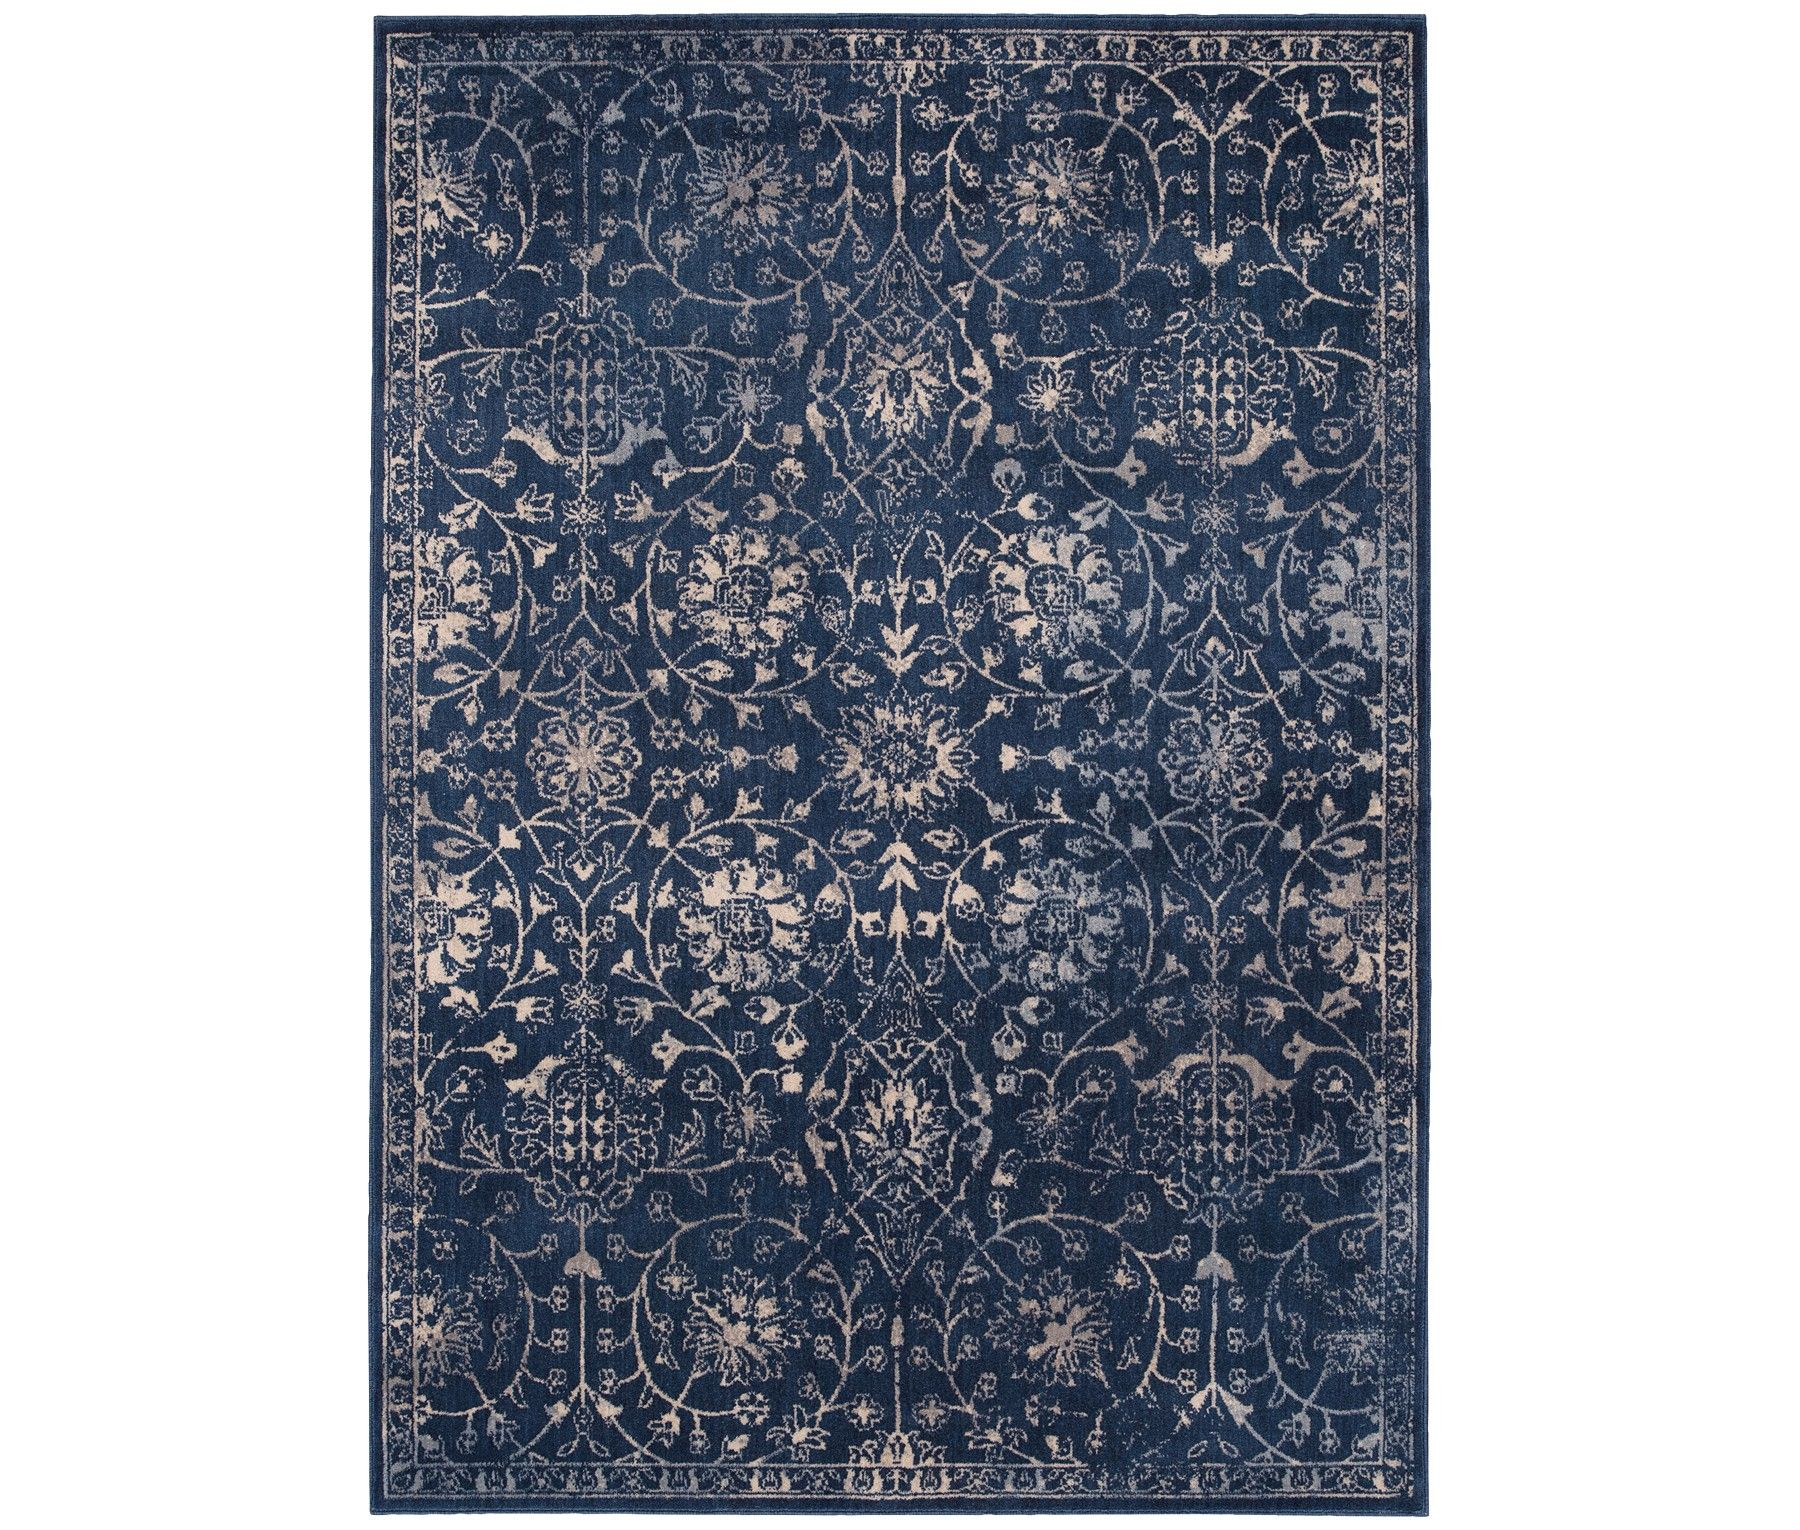 Kelly Ripa Home Origin KRH10 Navy Area Rugs Only At Macys